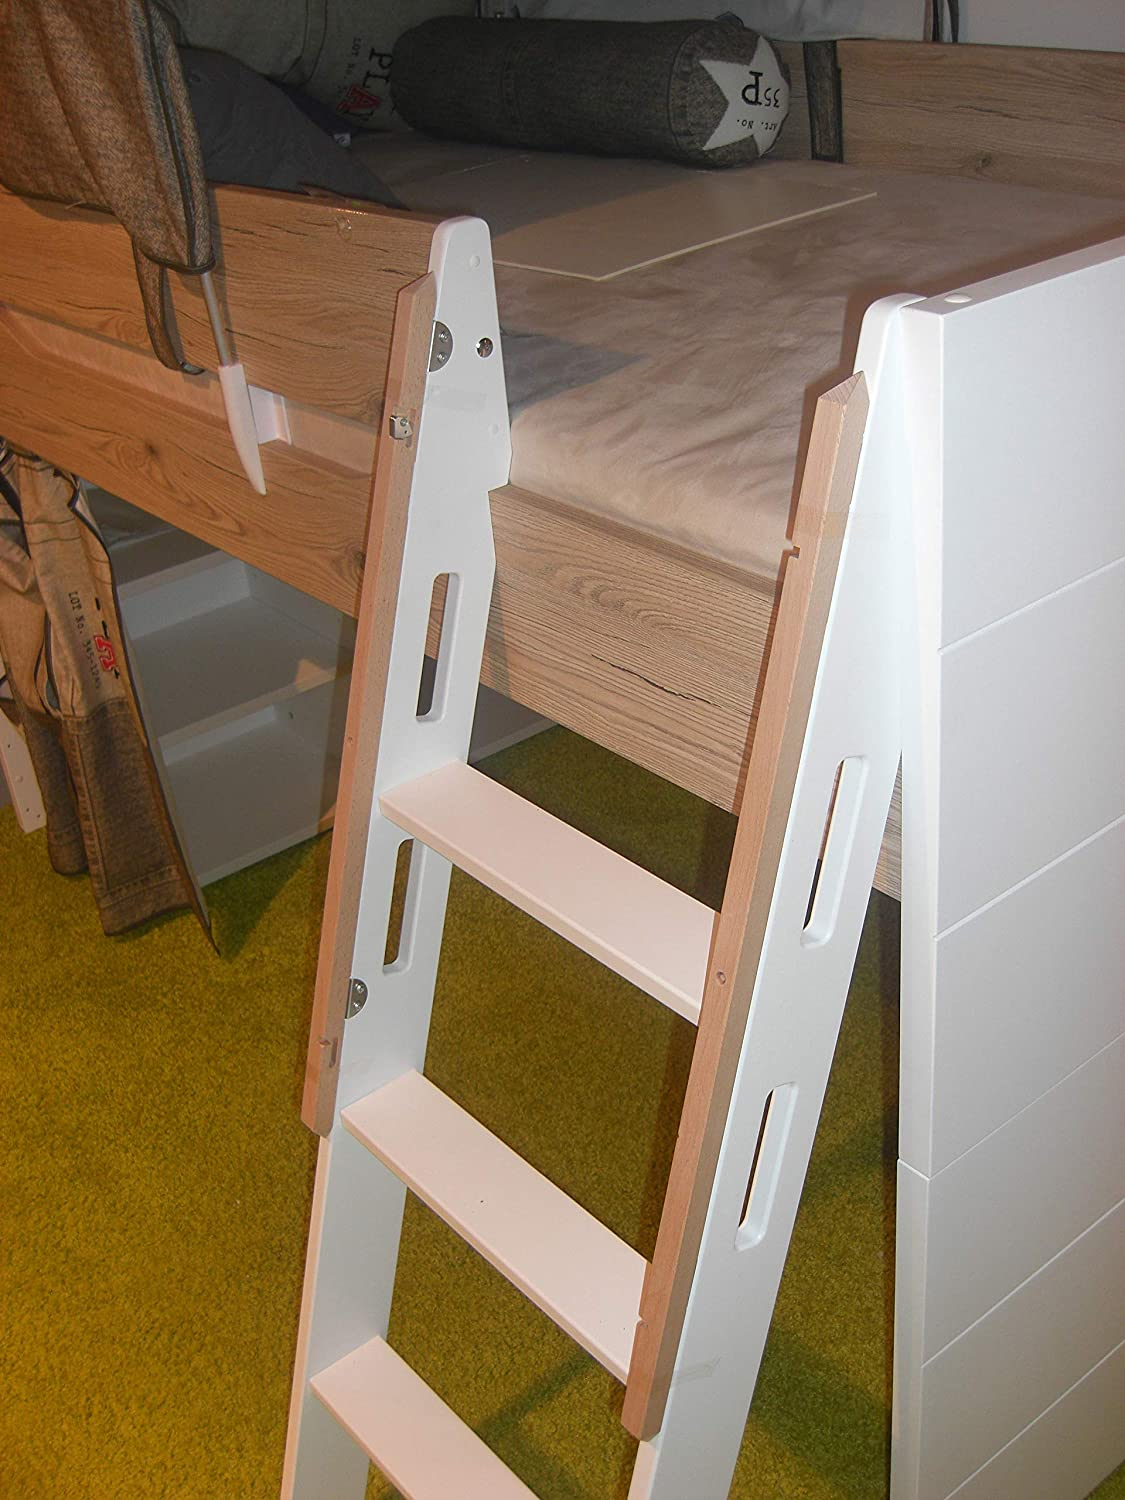 Ladder Lock For High And Bunk Beds Amazon De